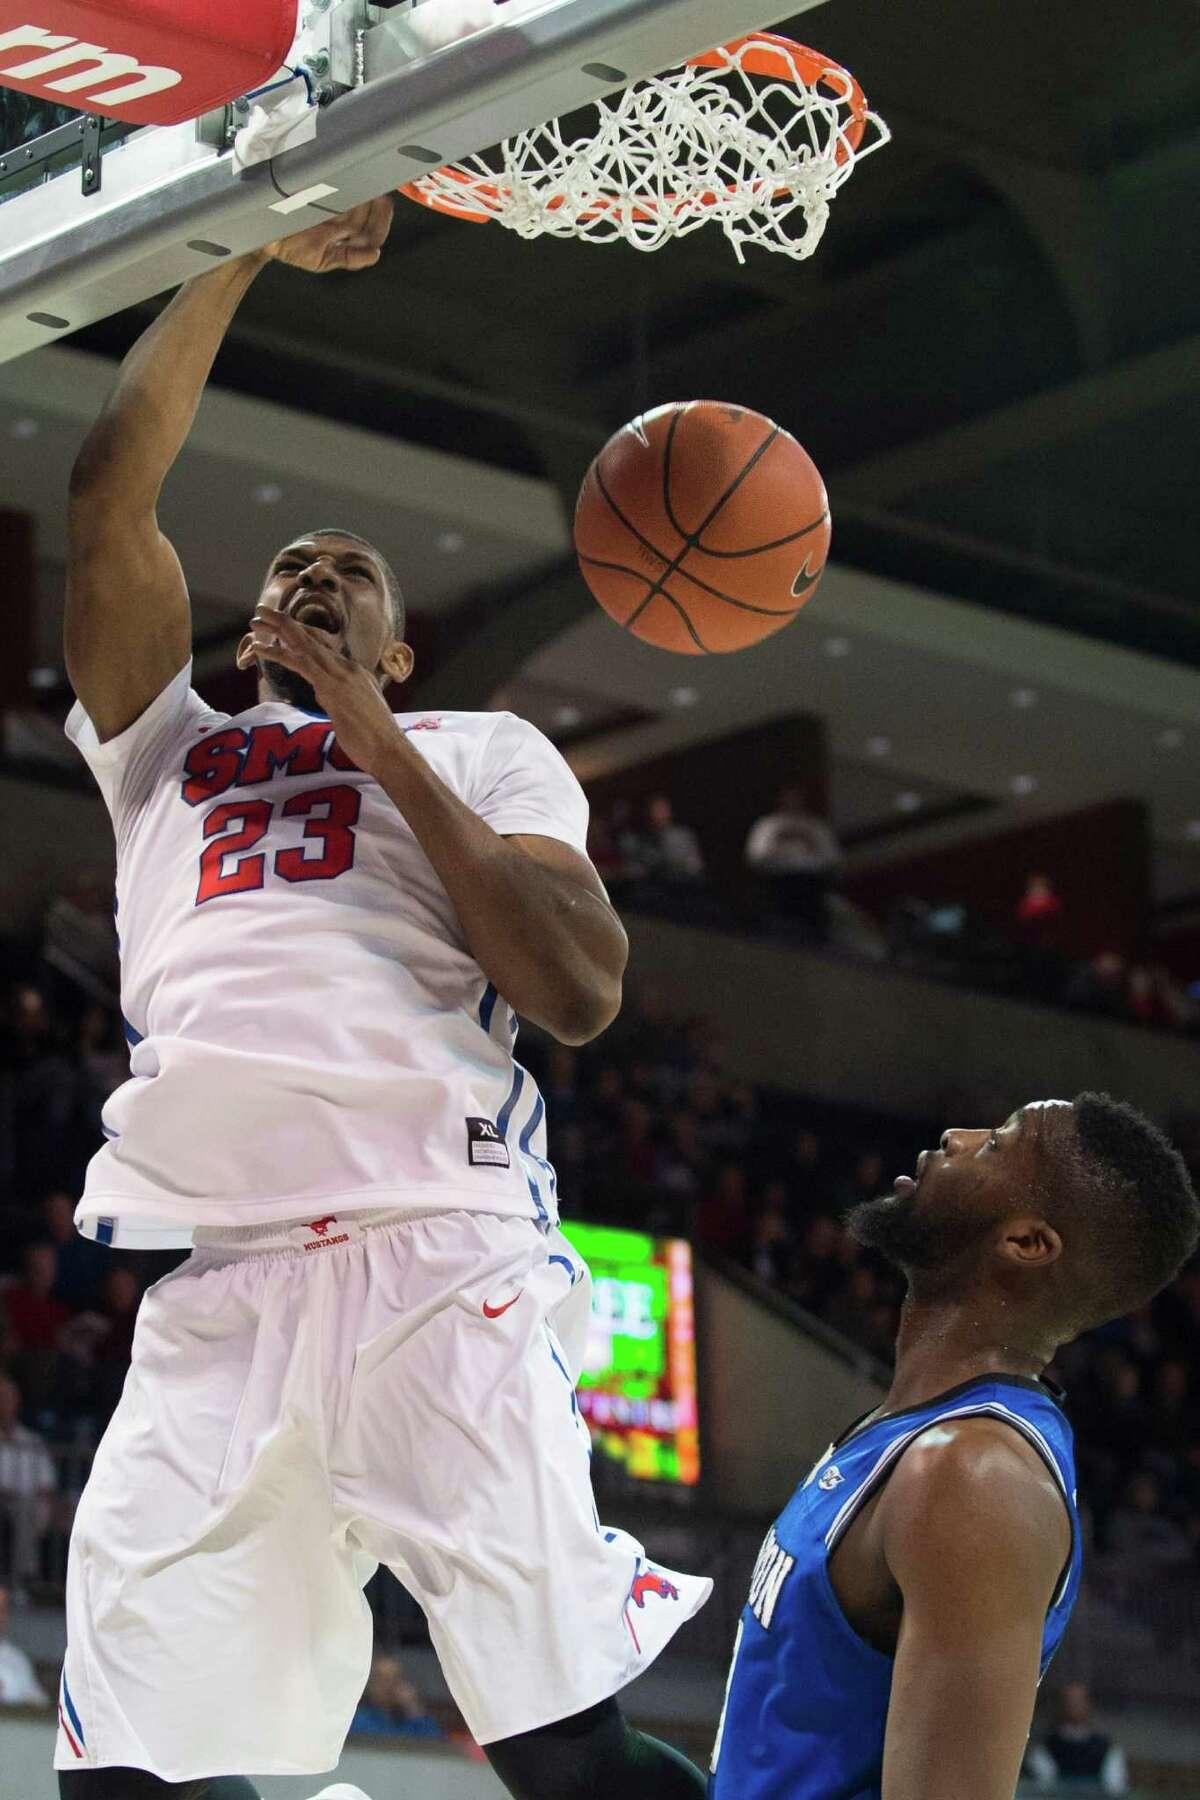 DALLAS, TX - DECEMBER 17: Jordan Tolbert #23 of the SMU Mustangs dunks the ball against the Hampton Pirates on December 17, 2015 at Moody Coliseum in Dallas, Texas. (Photo by Cooper Neill/Getty Images) ORG XMIT: 596457513